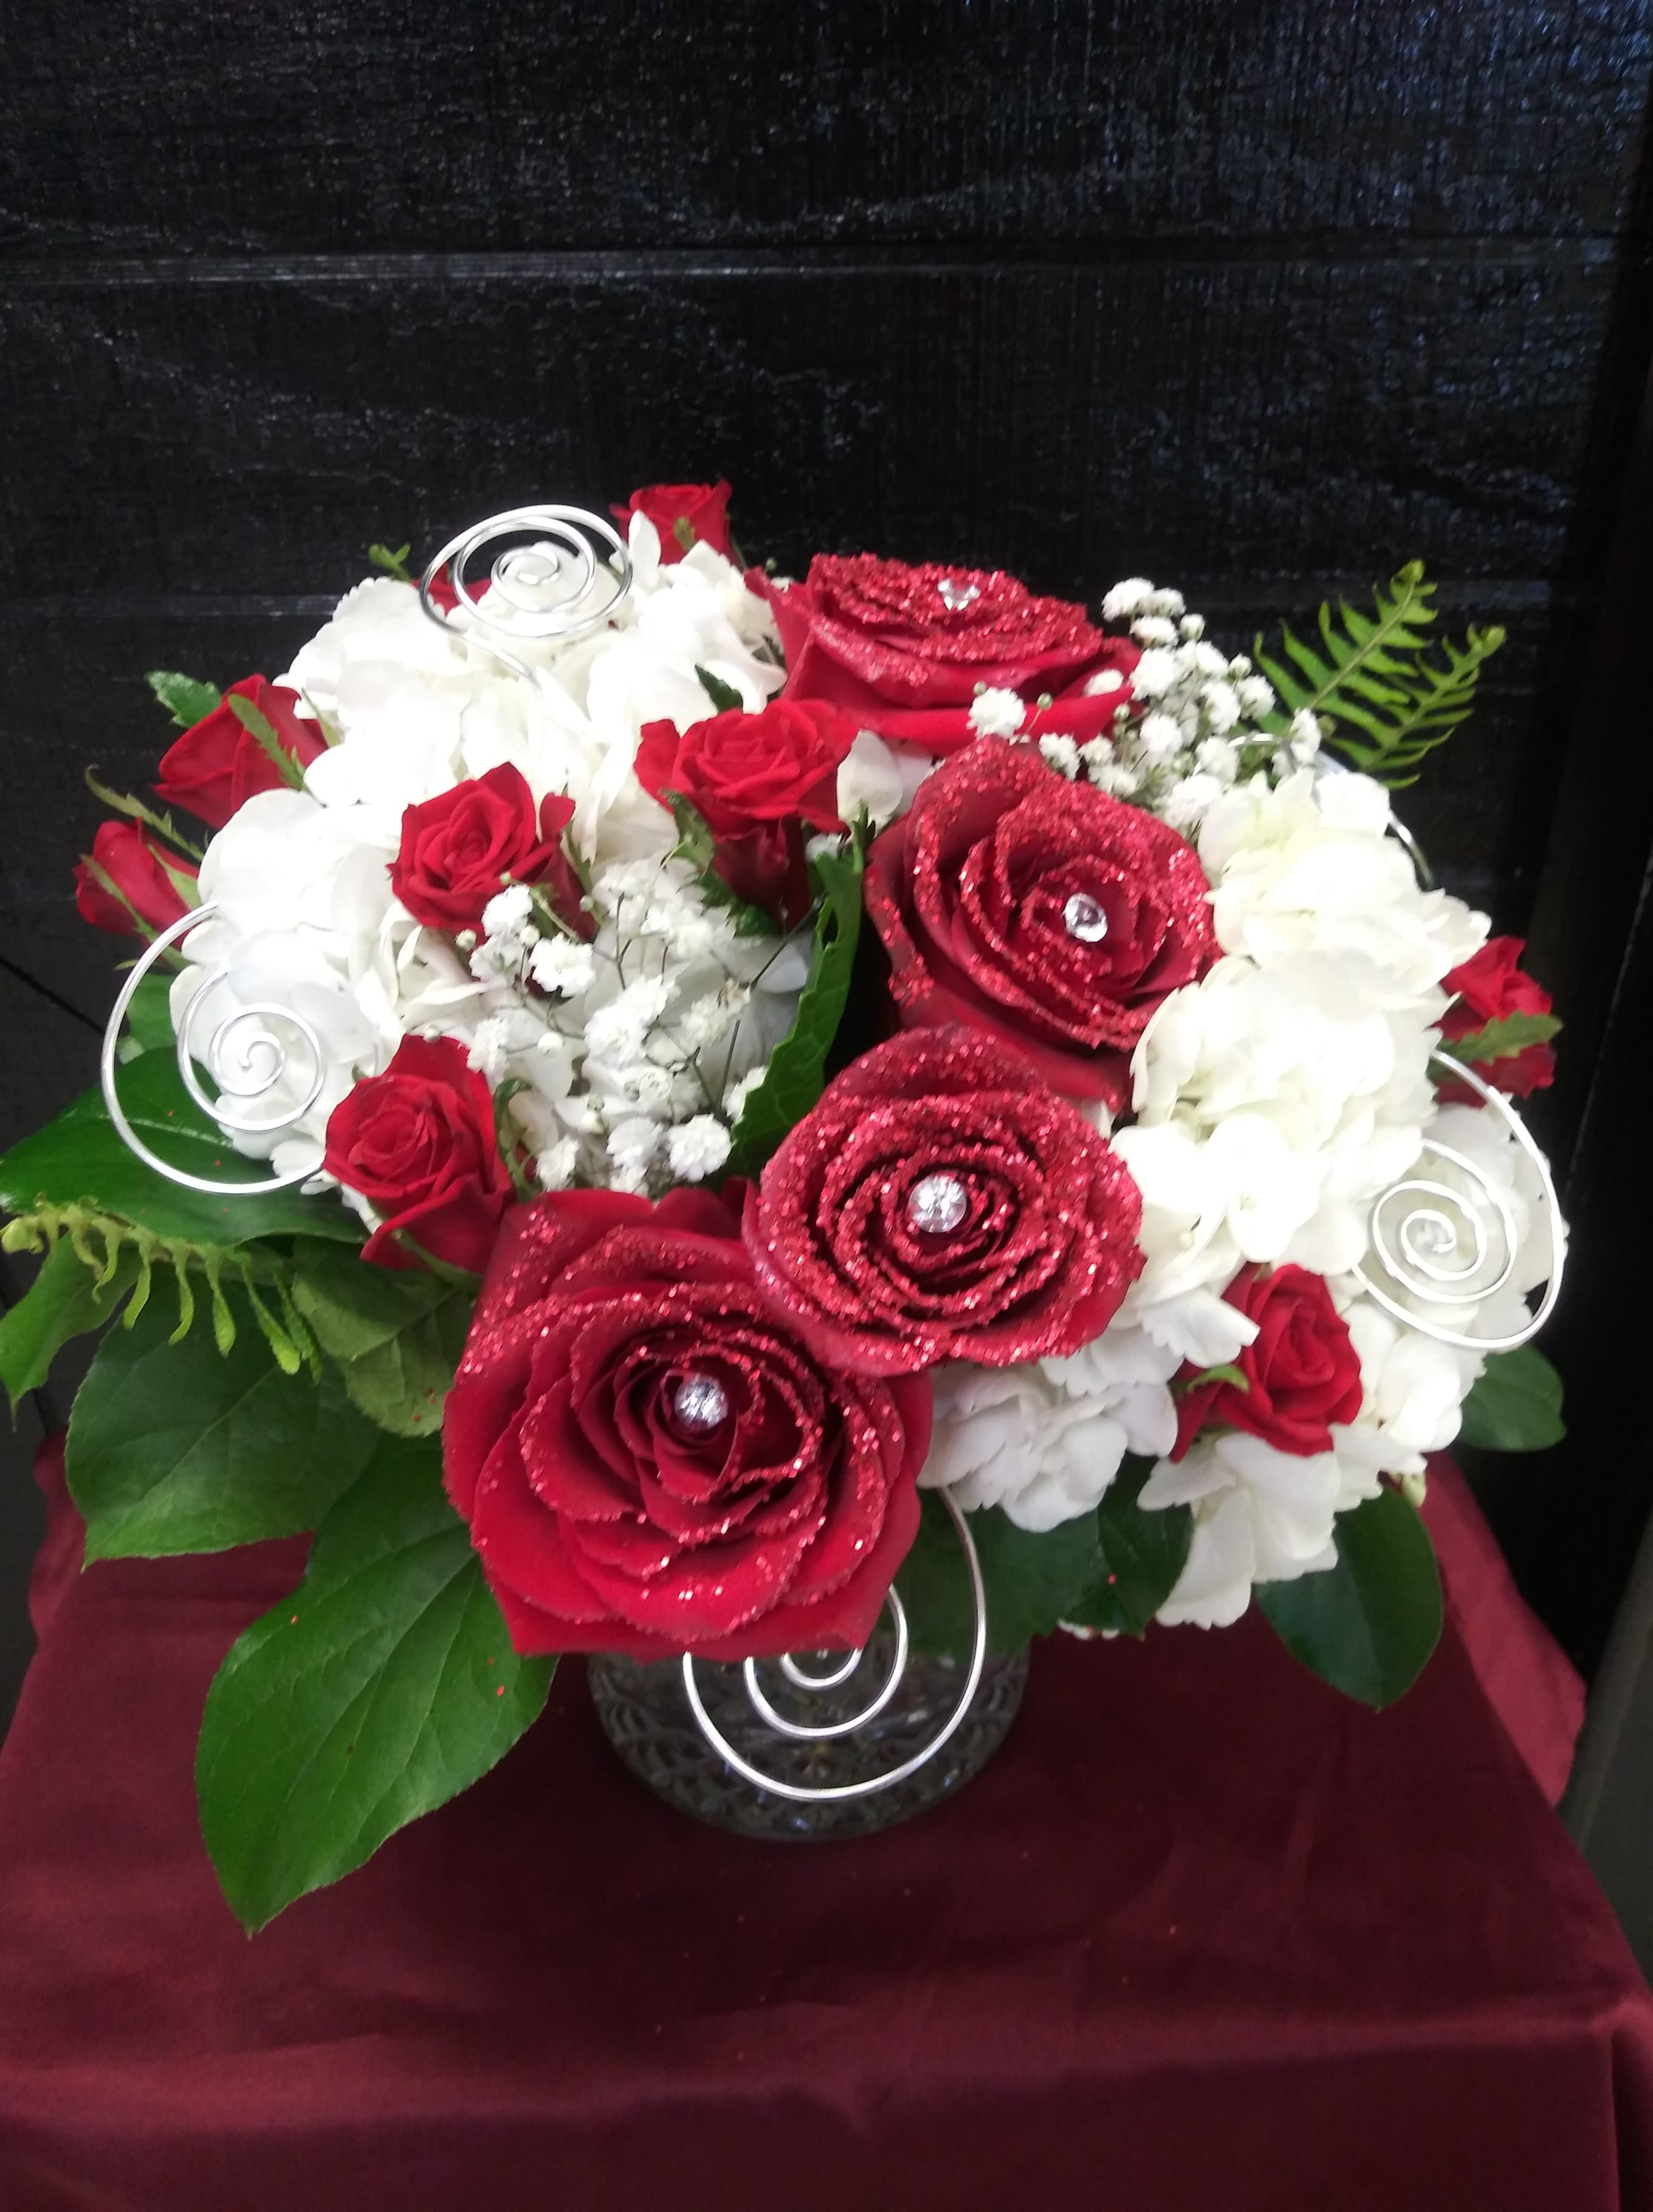 Celebrate Your Anniversary With Castro S Flowers This Truly Breathtaking Arrangement Will Make Her Fall In Lo Flower Delivery Same Day Flower Delivery Flowers